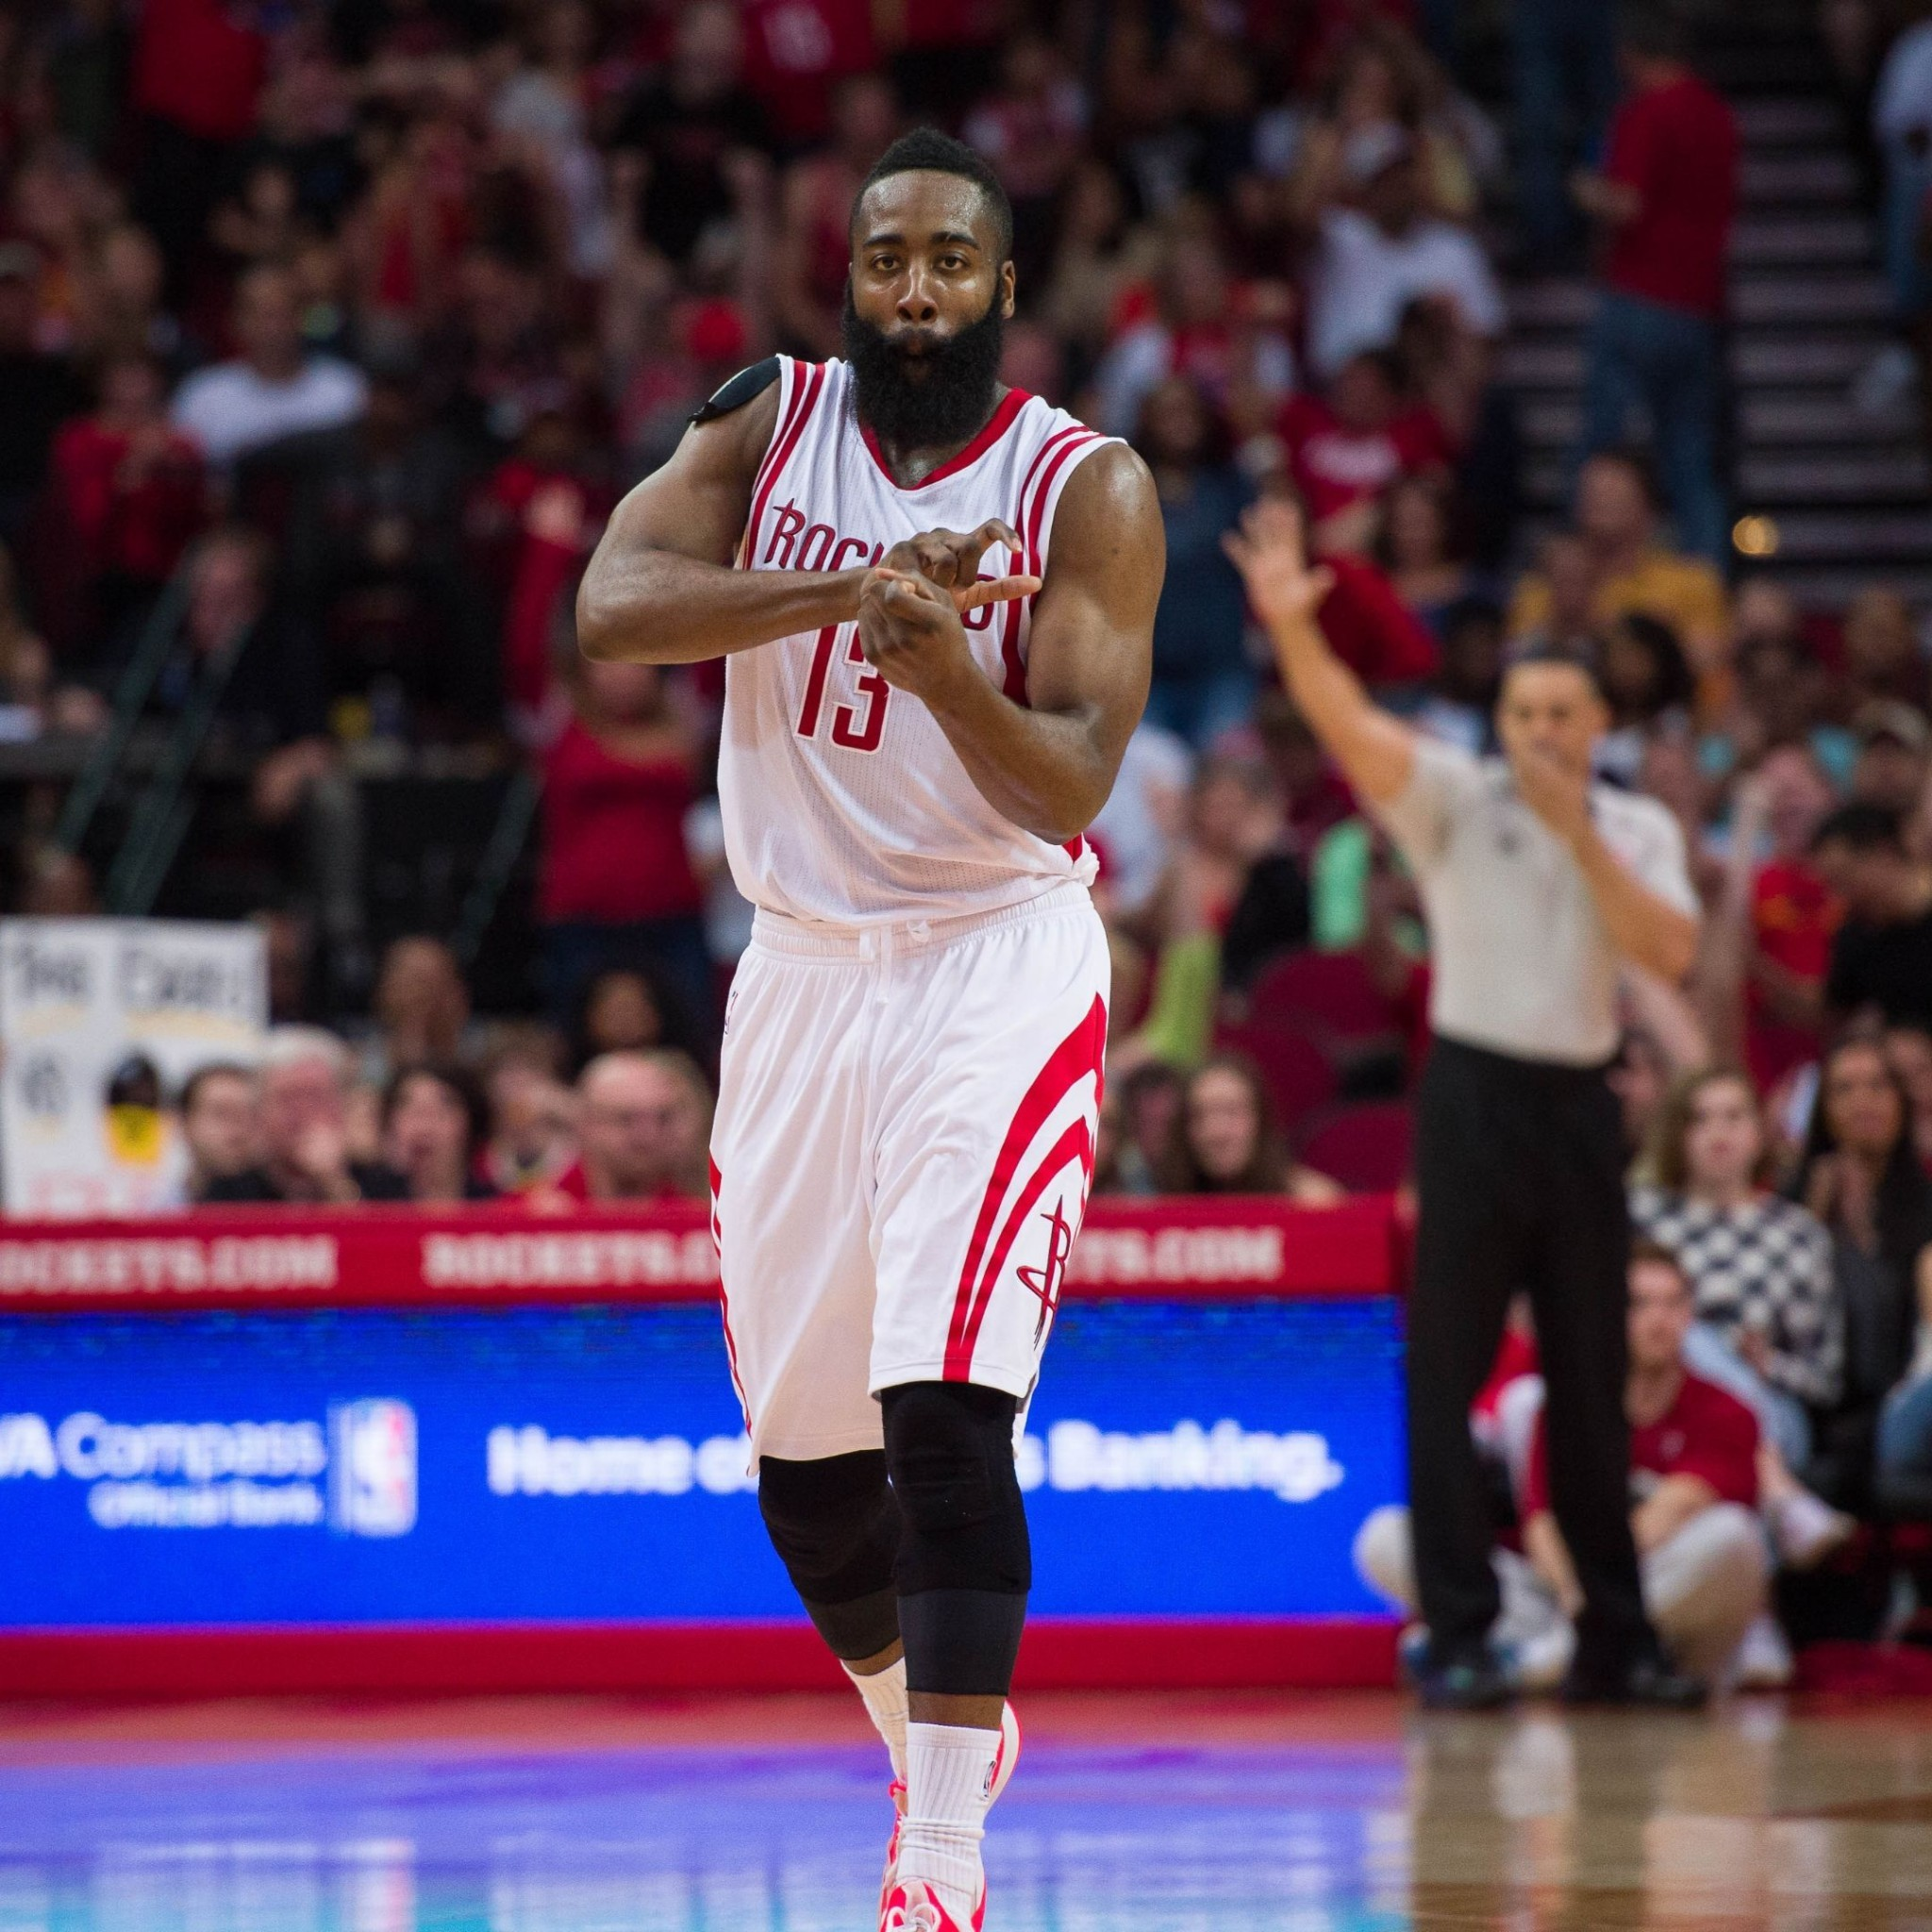 Related to Houston Rockets 2016 James Harden 4K Wallpapers